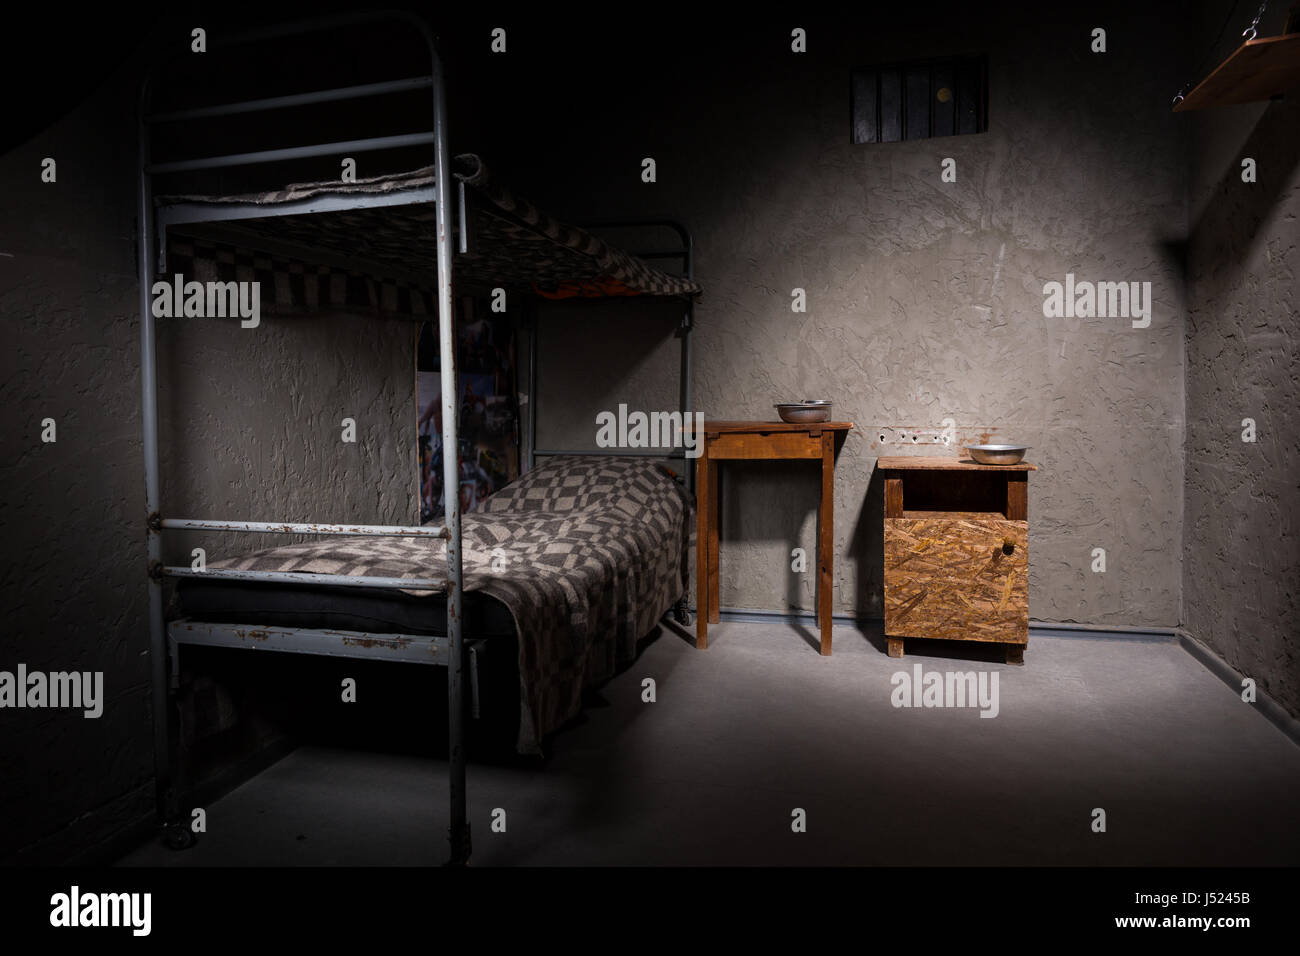 Jail Cell With Iron Bunk Bed And Wooden Bedside Table With Aluminum